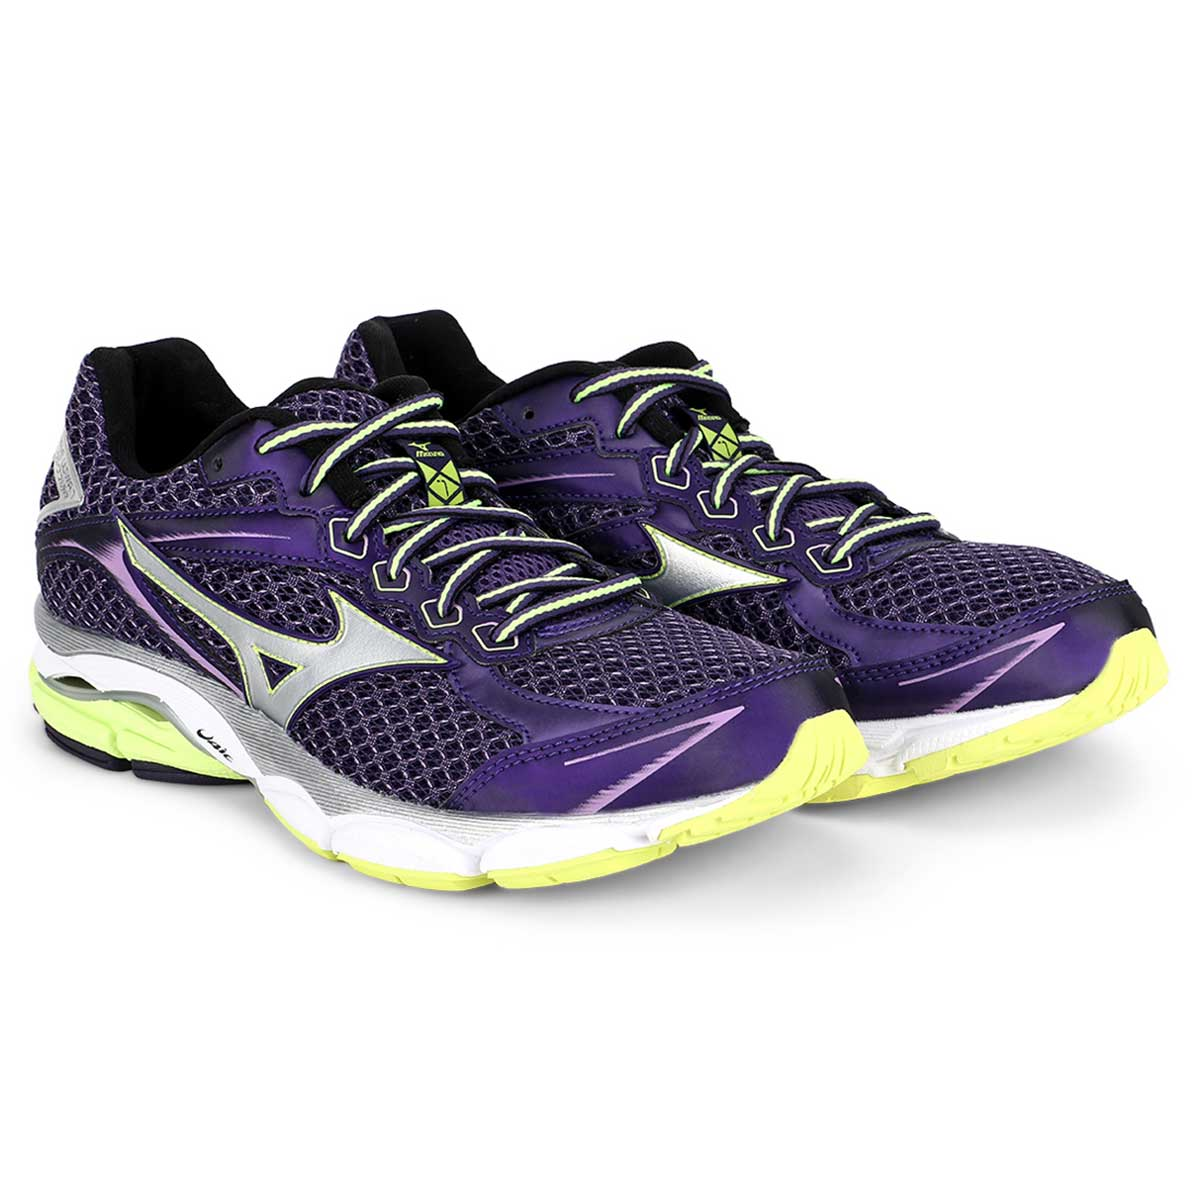 6,5 Mizuno Wave Ultima 7 Women - parach purple/ silver/ yellow